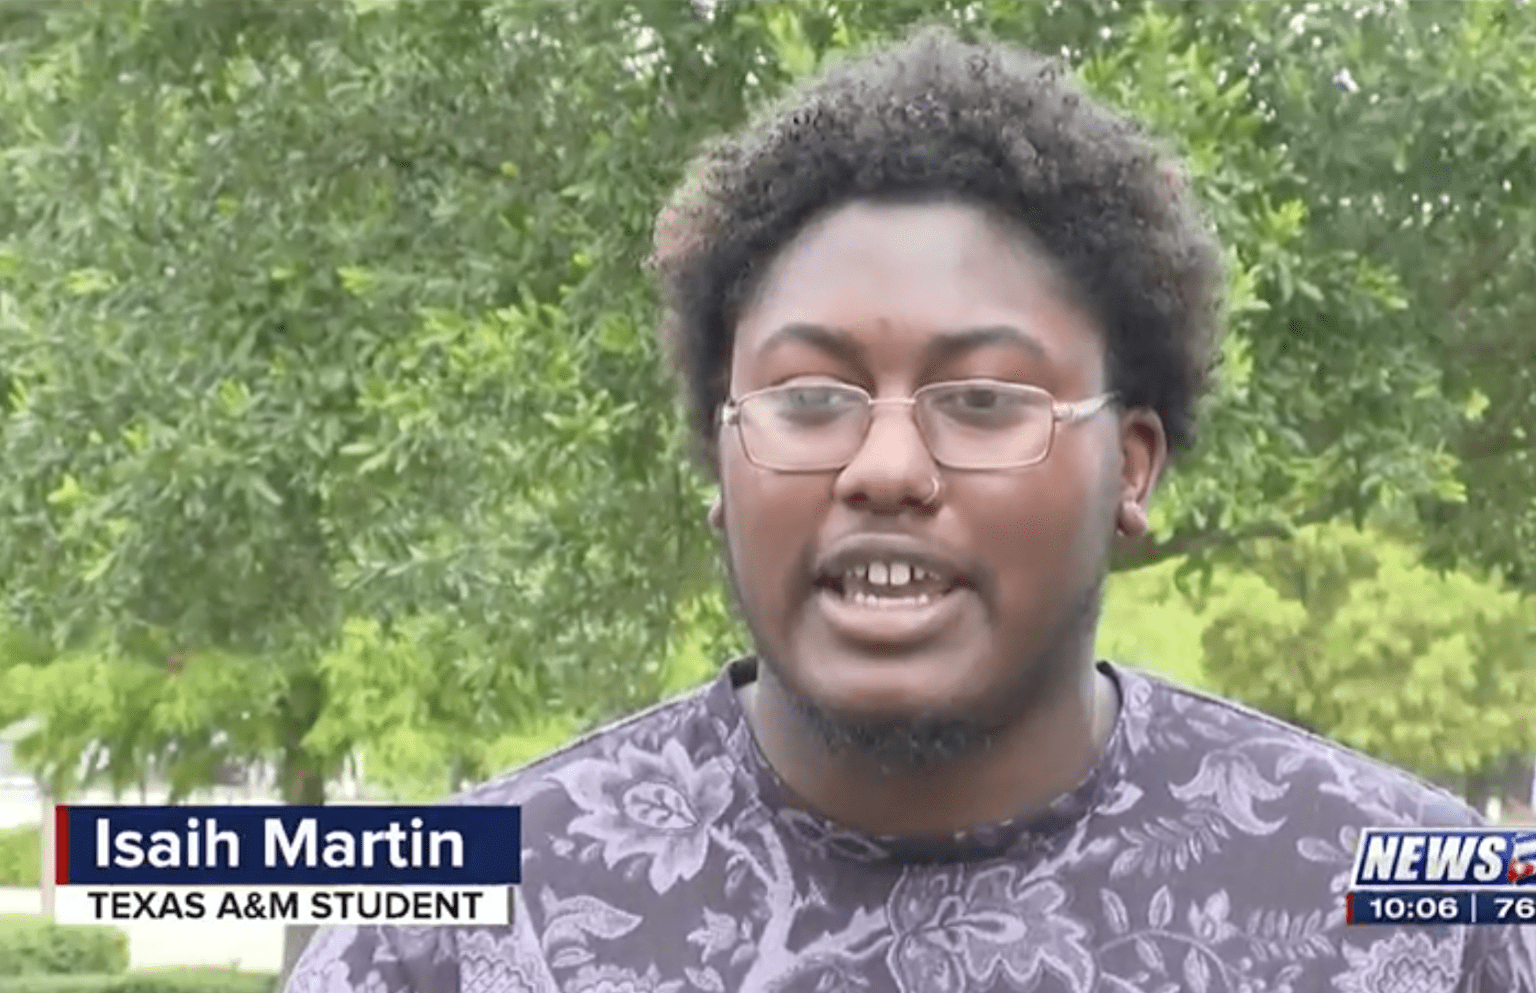 Police: 'Racist' notes left on Texas A&M student's car turn out to be a hate hoax